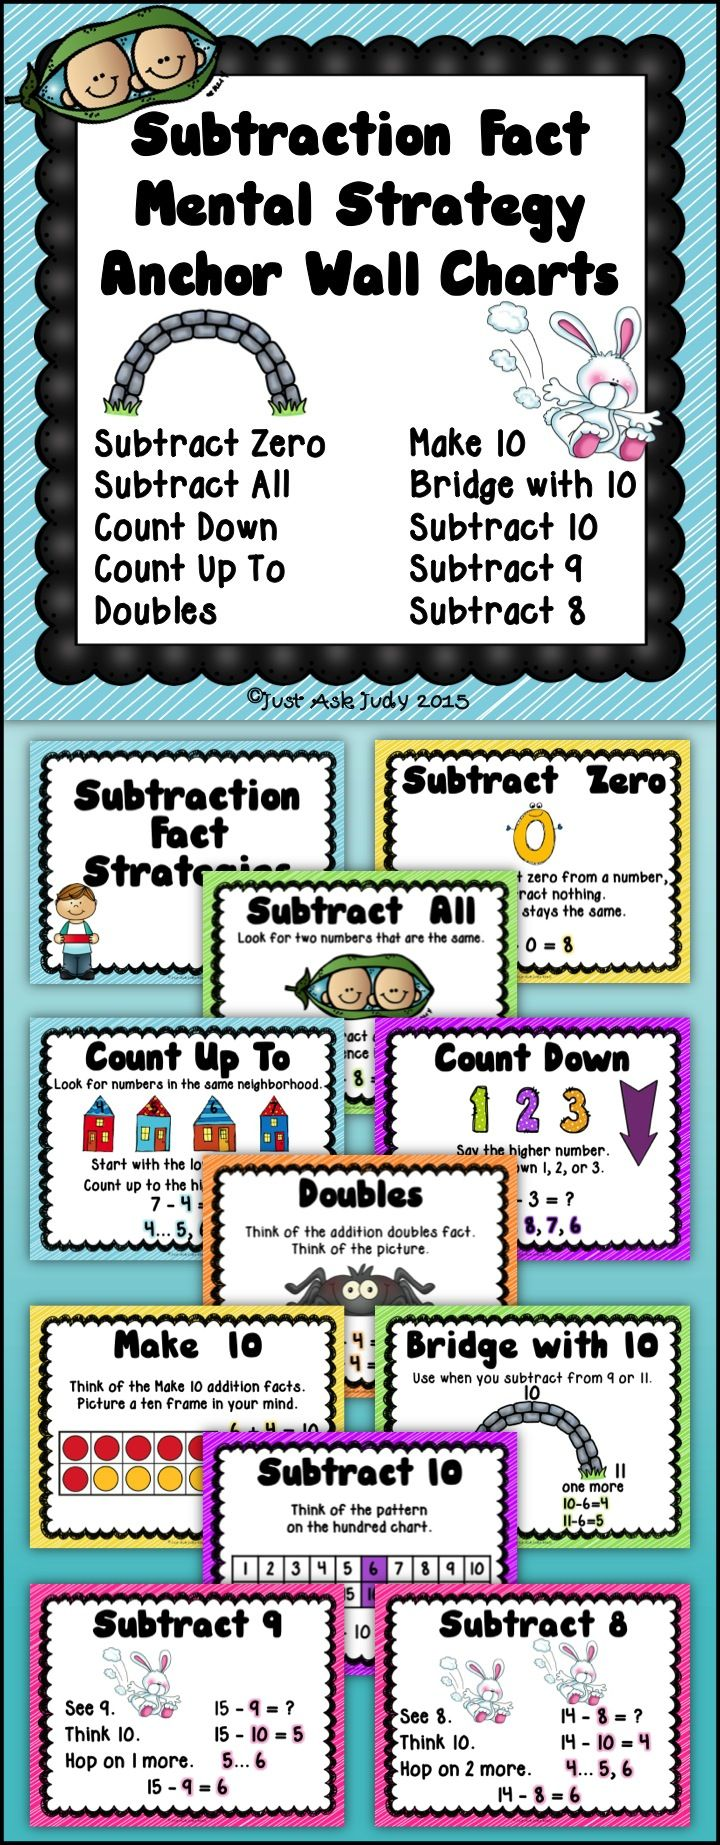 This is an attractive set of ten anchor wall charts for applying mental strategies to subtract basic facts within 20. Each chart includes visual and verbal cues to provide the support that will enable your students to recall and apply these strategies. Grades 1-2 $